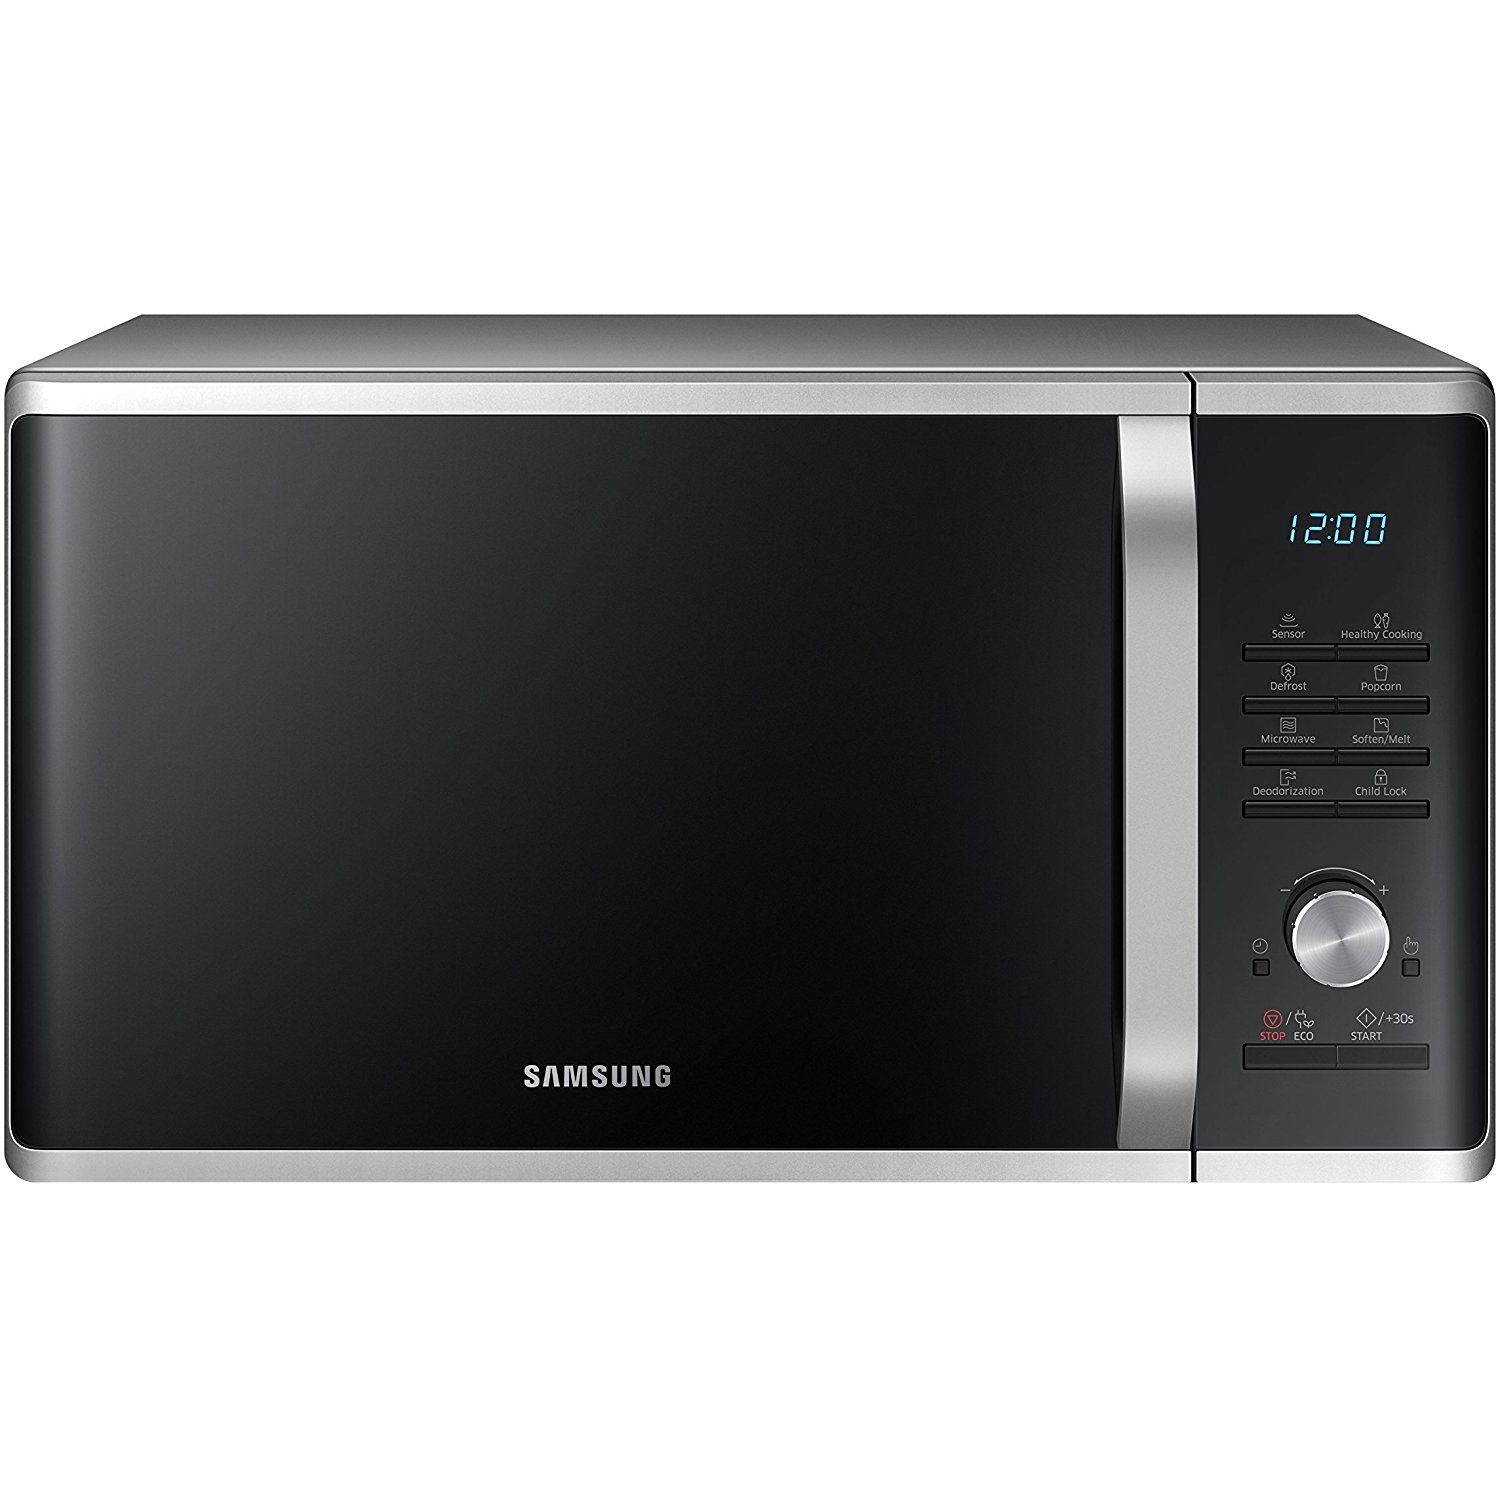 Samsung Ms11k3000as 1 Cu Ft Countertop Microwave Oven With Sensor And Ceramic Enamel Interior